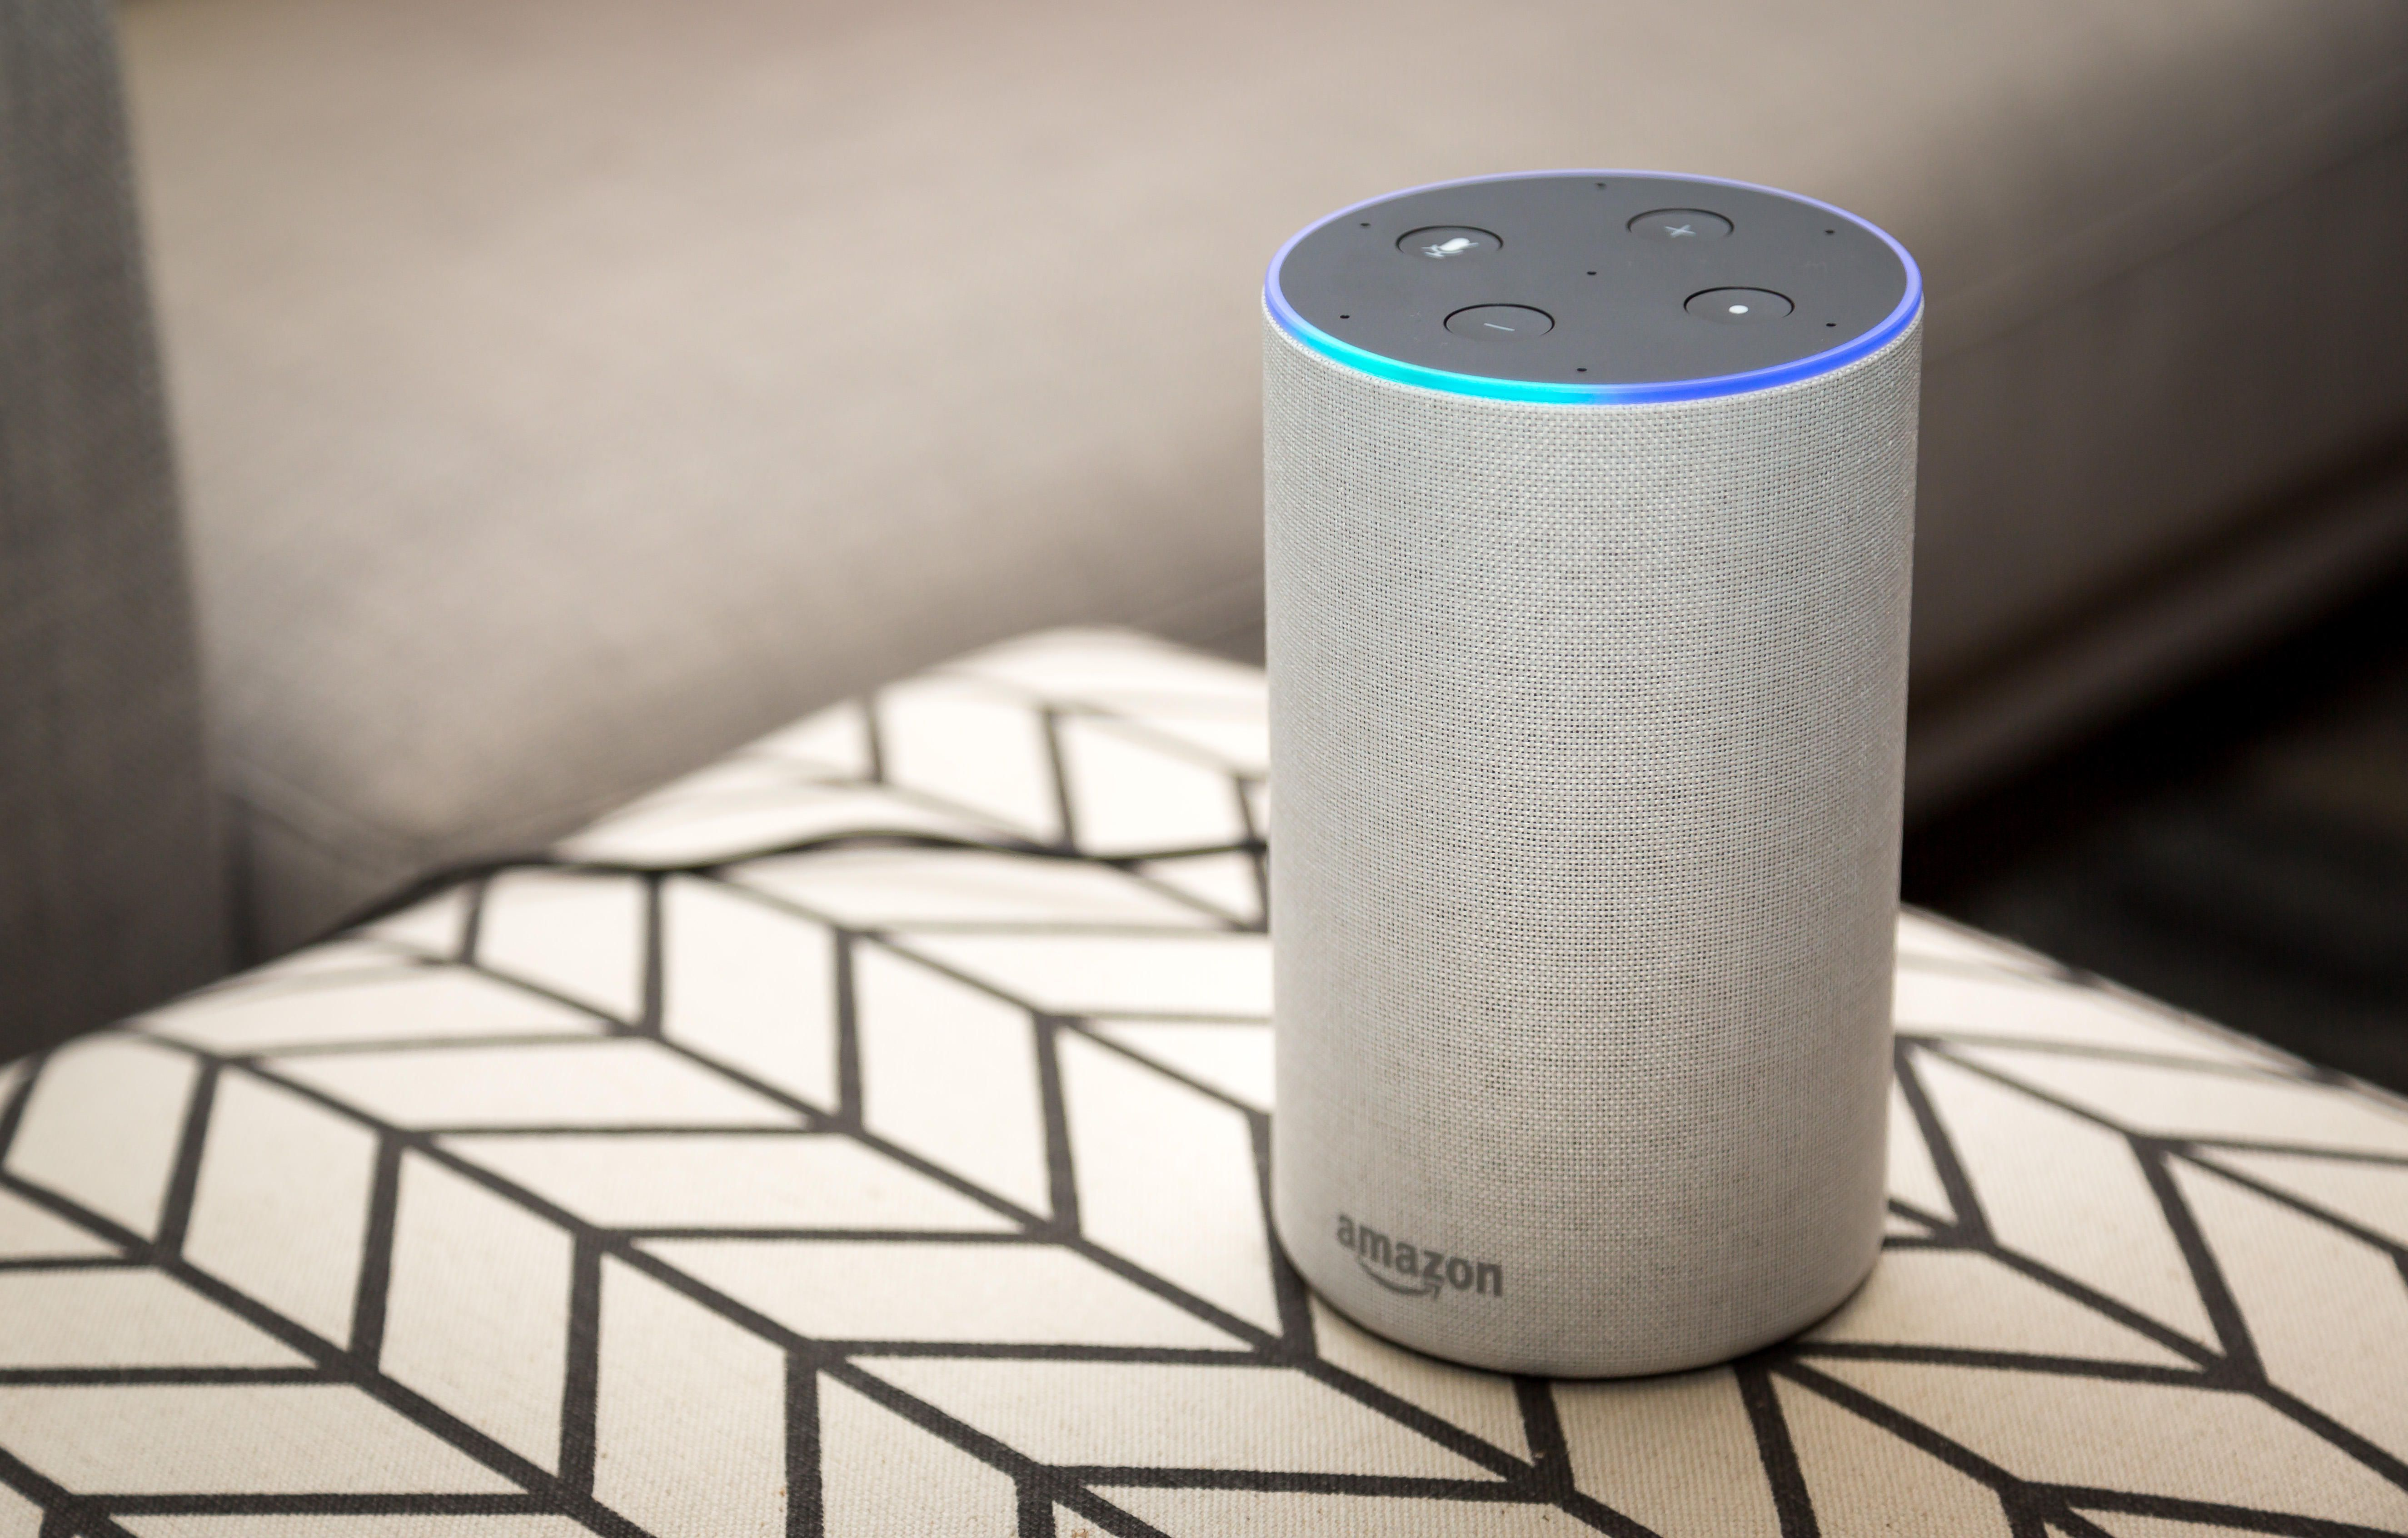 Weirdest things Amazon Echo can do From sneezing to